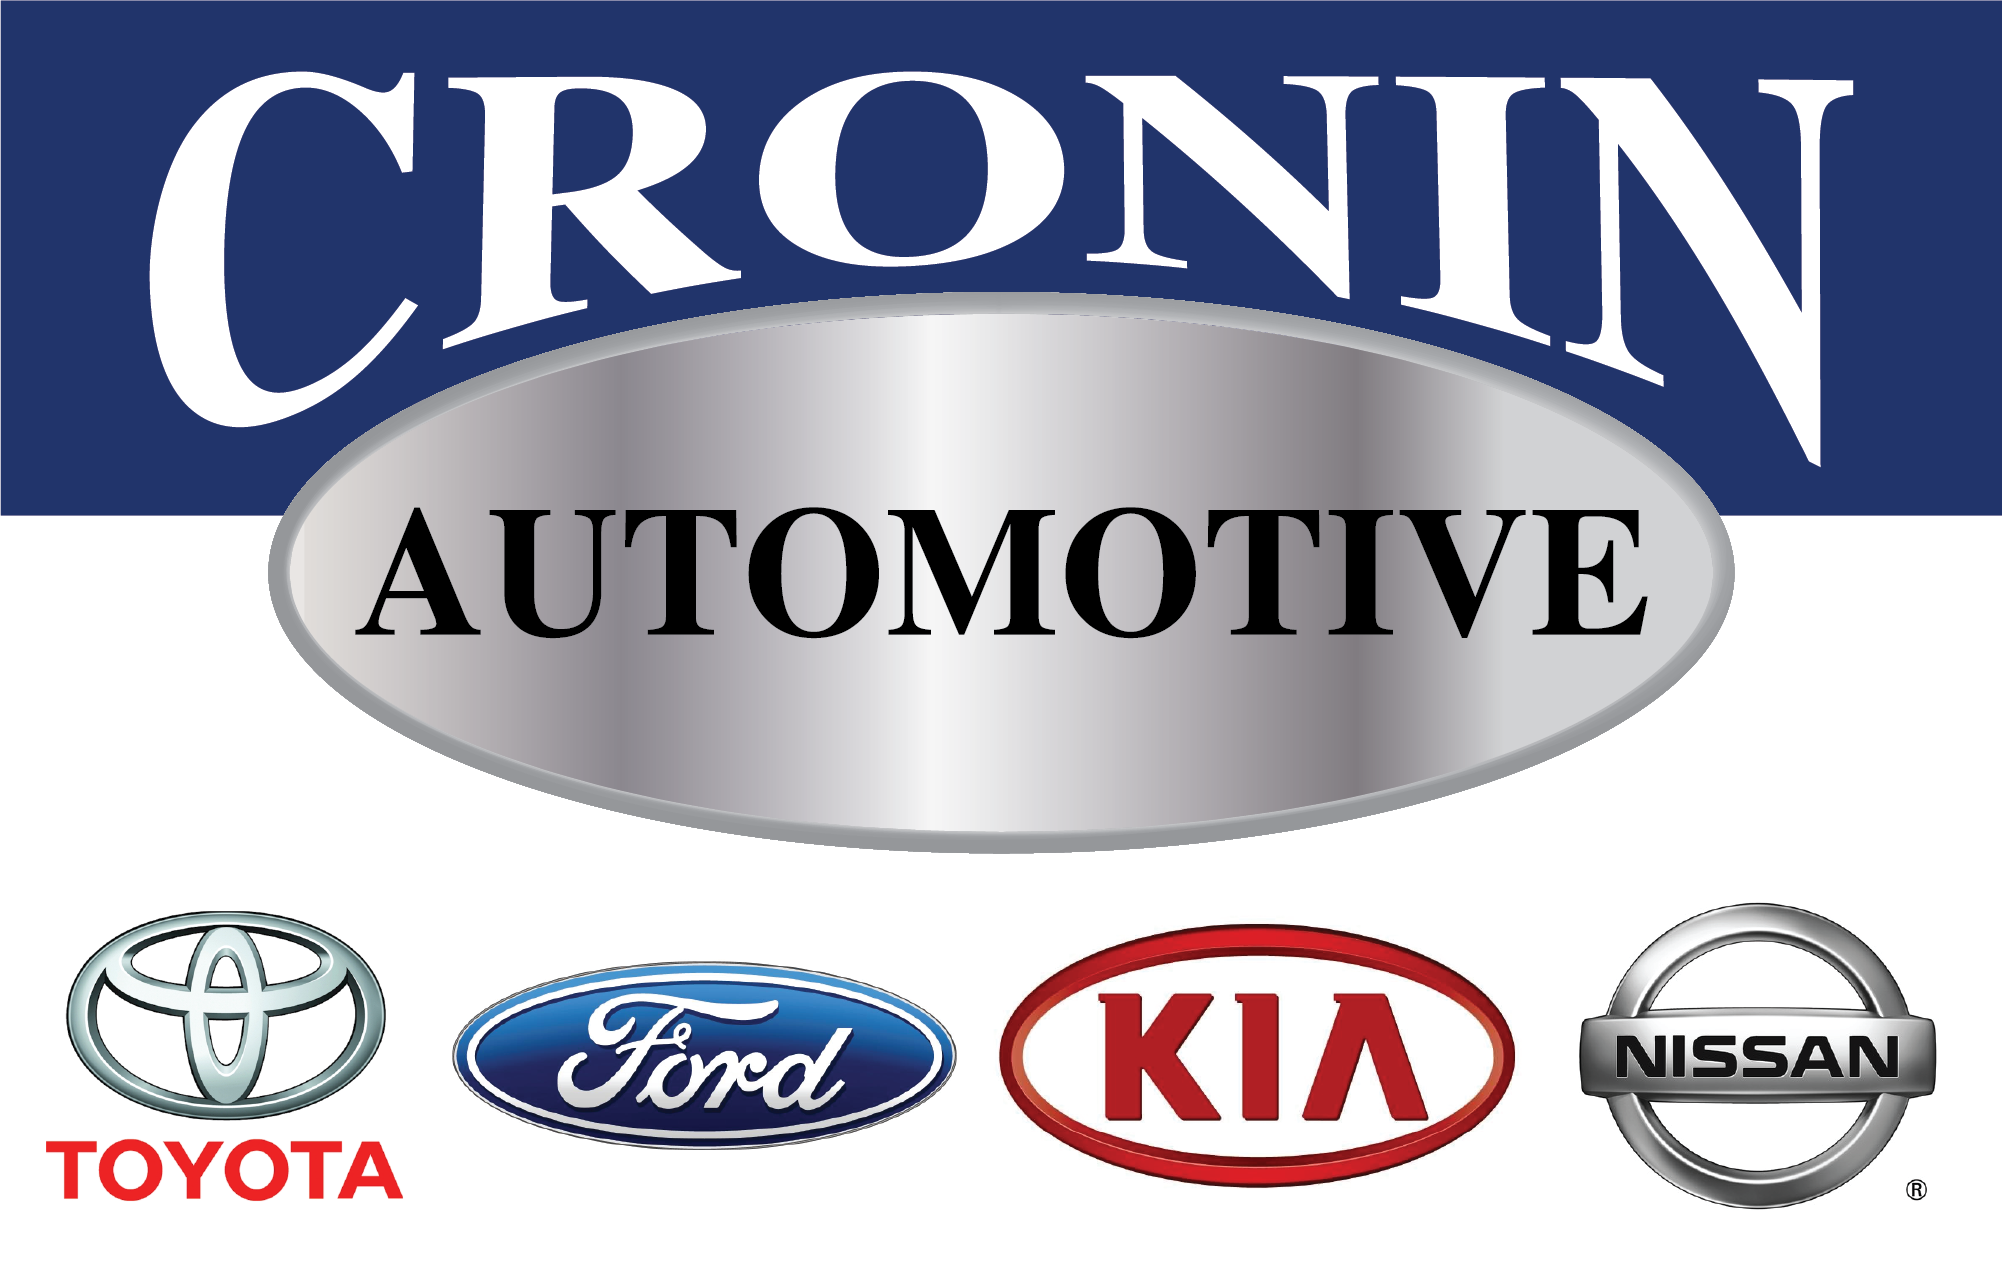 Cronin Automotive